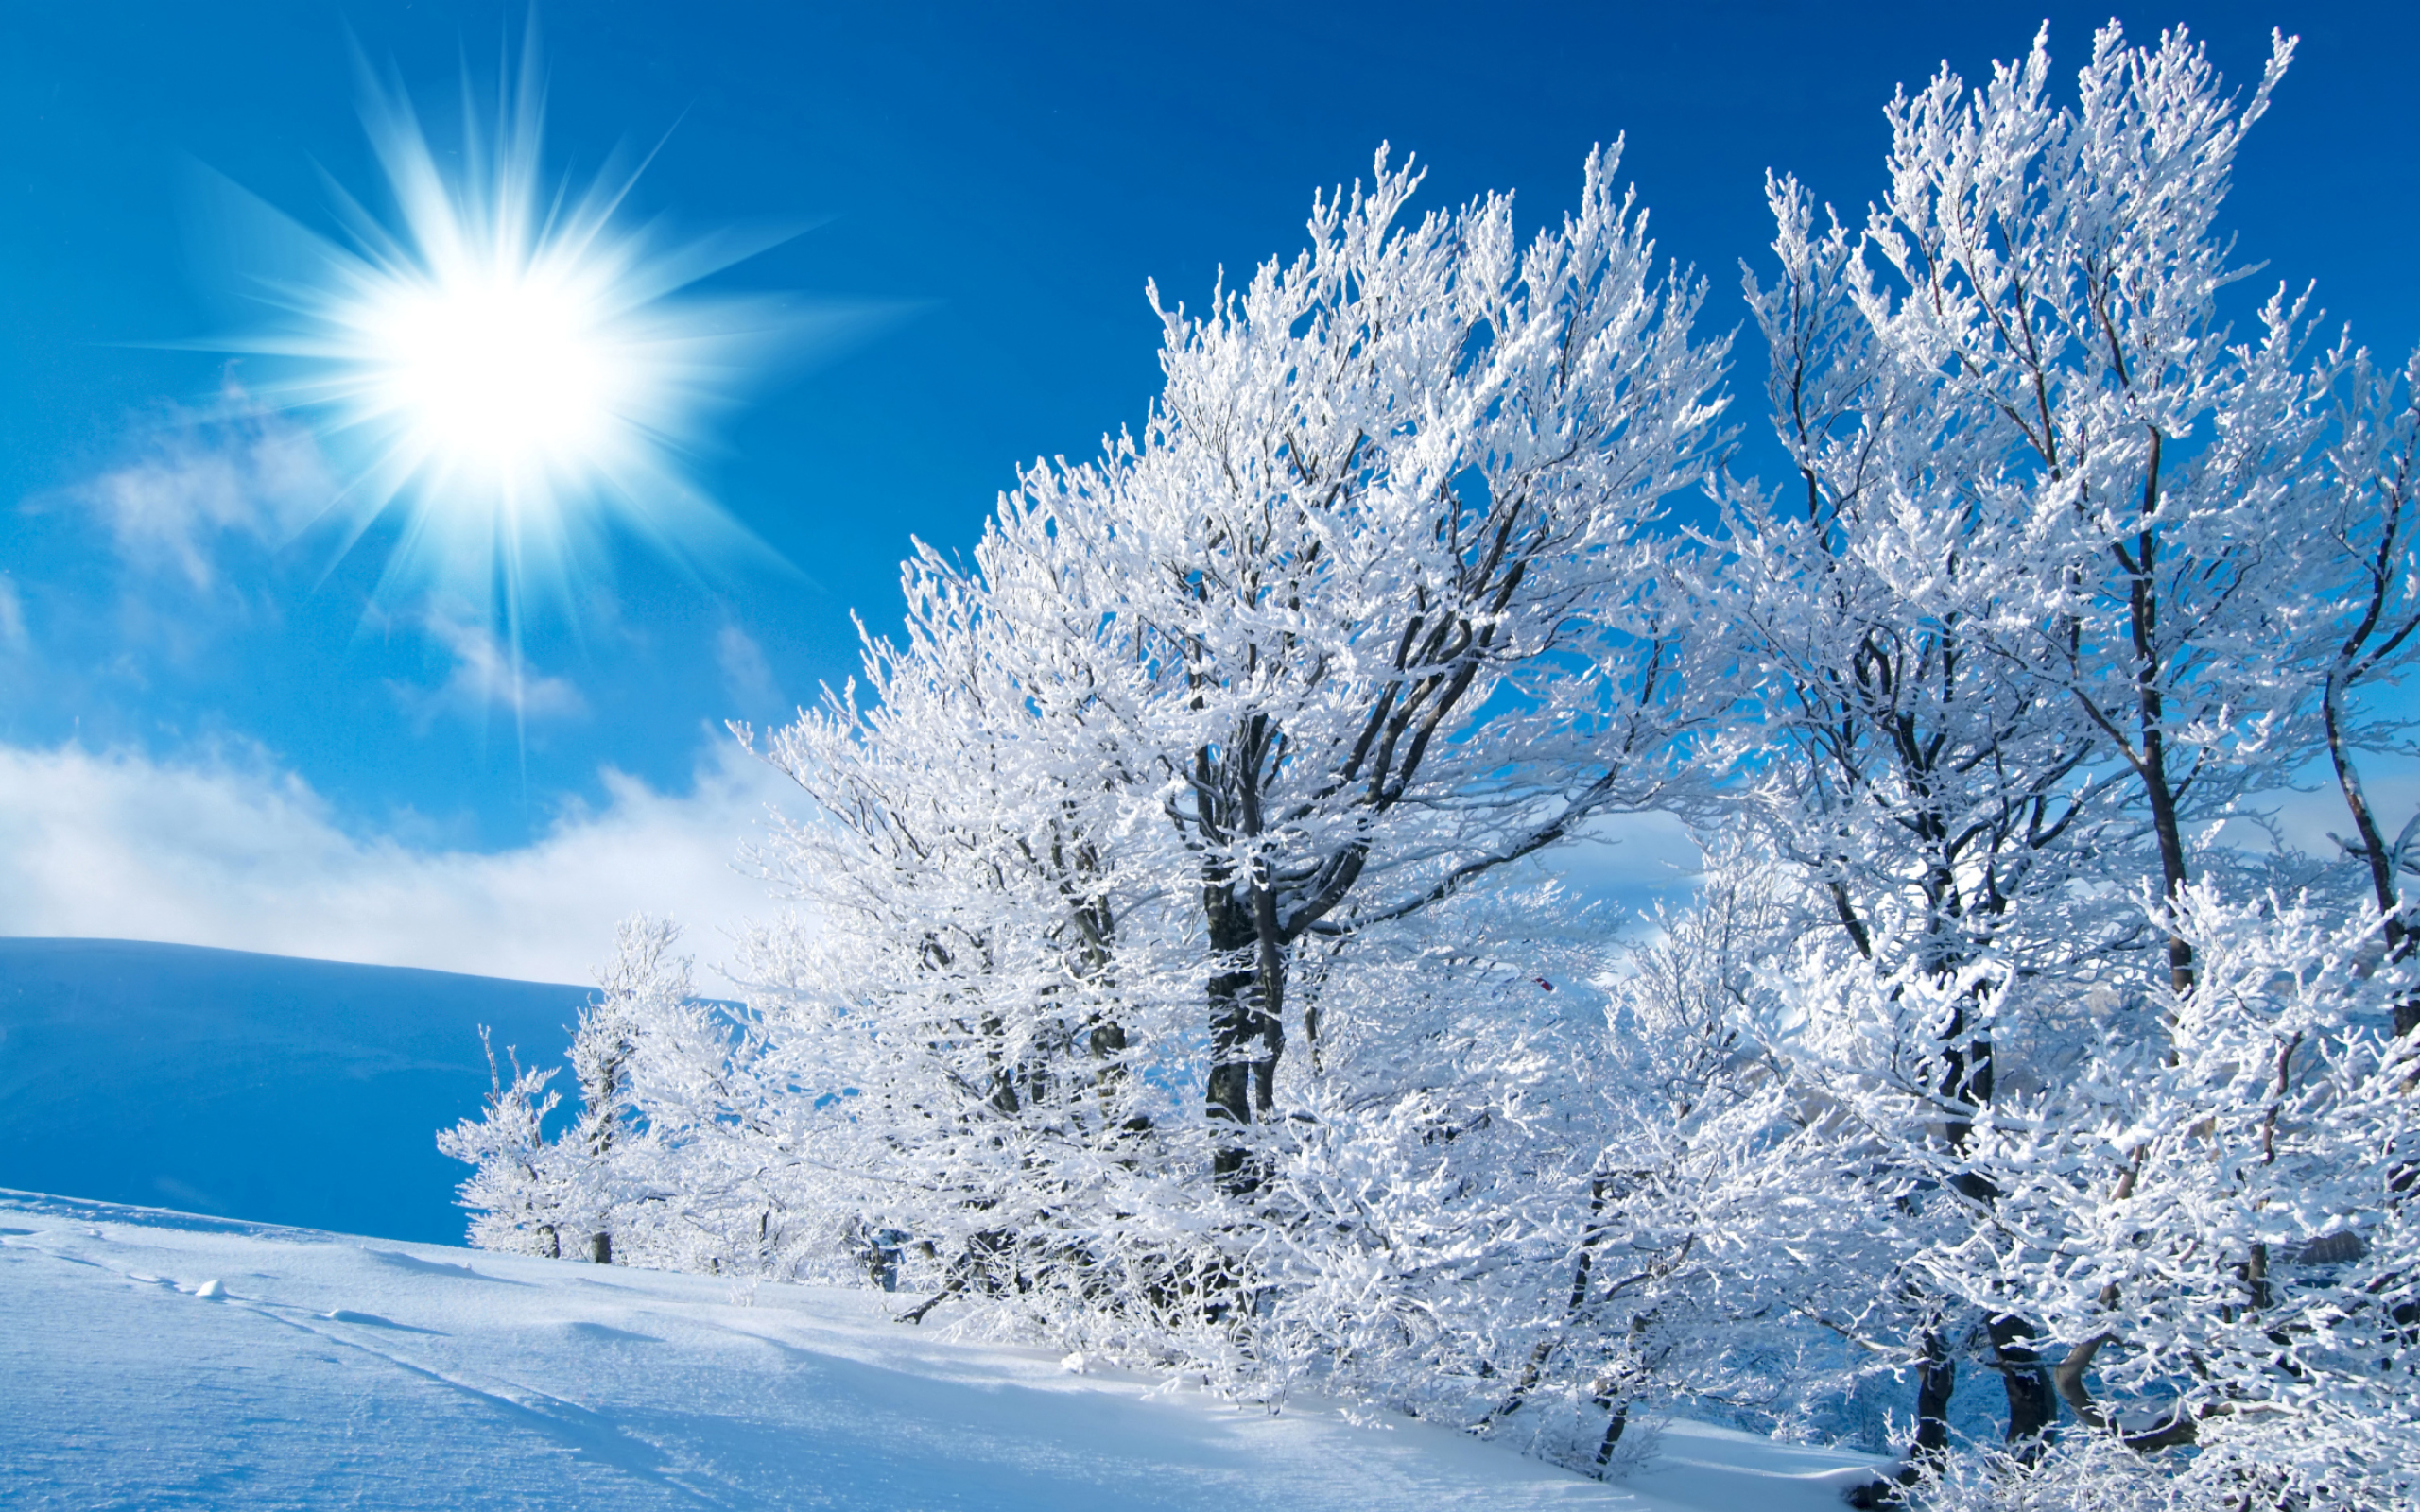 Winter Scenes for Desktop Wallpapers 2560x1600